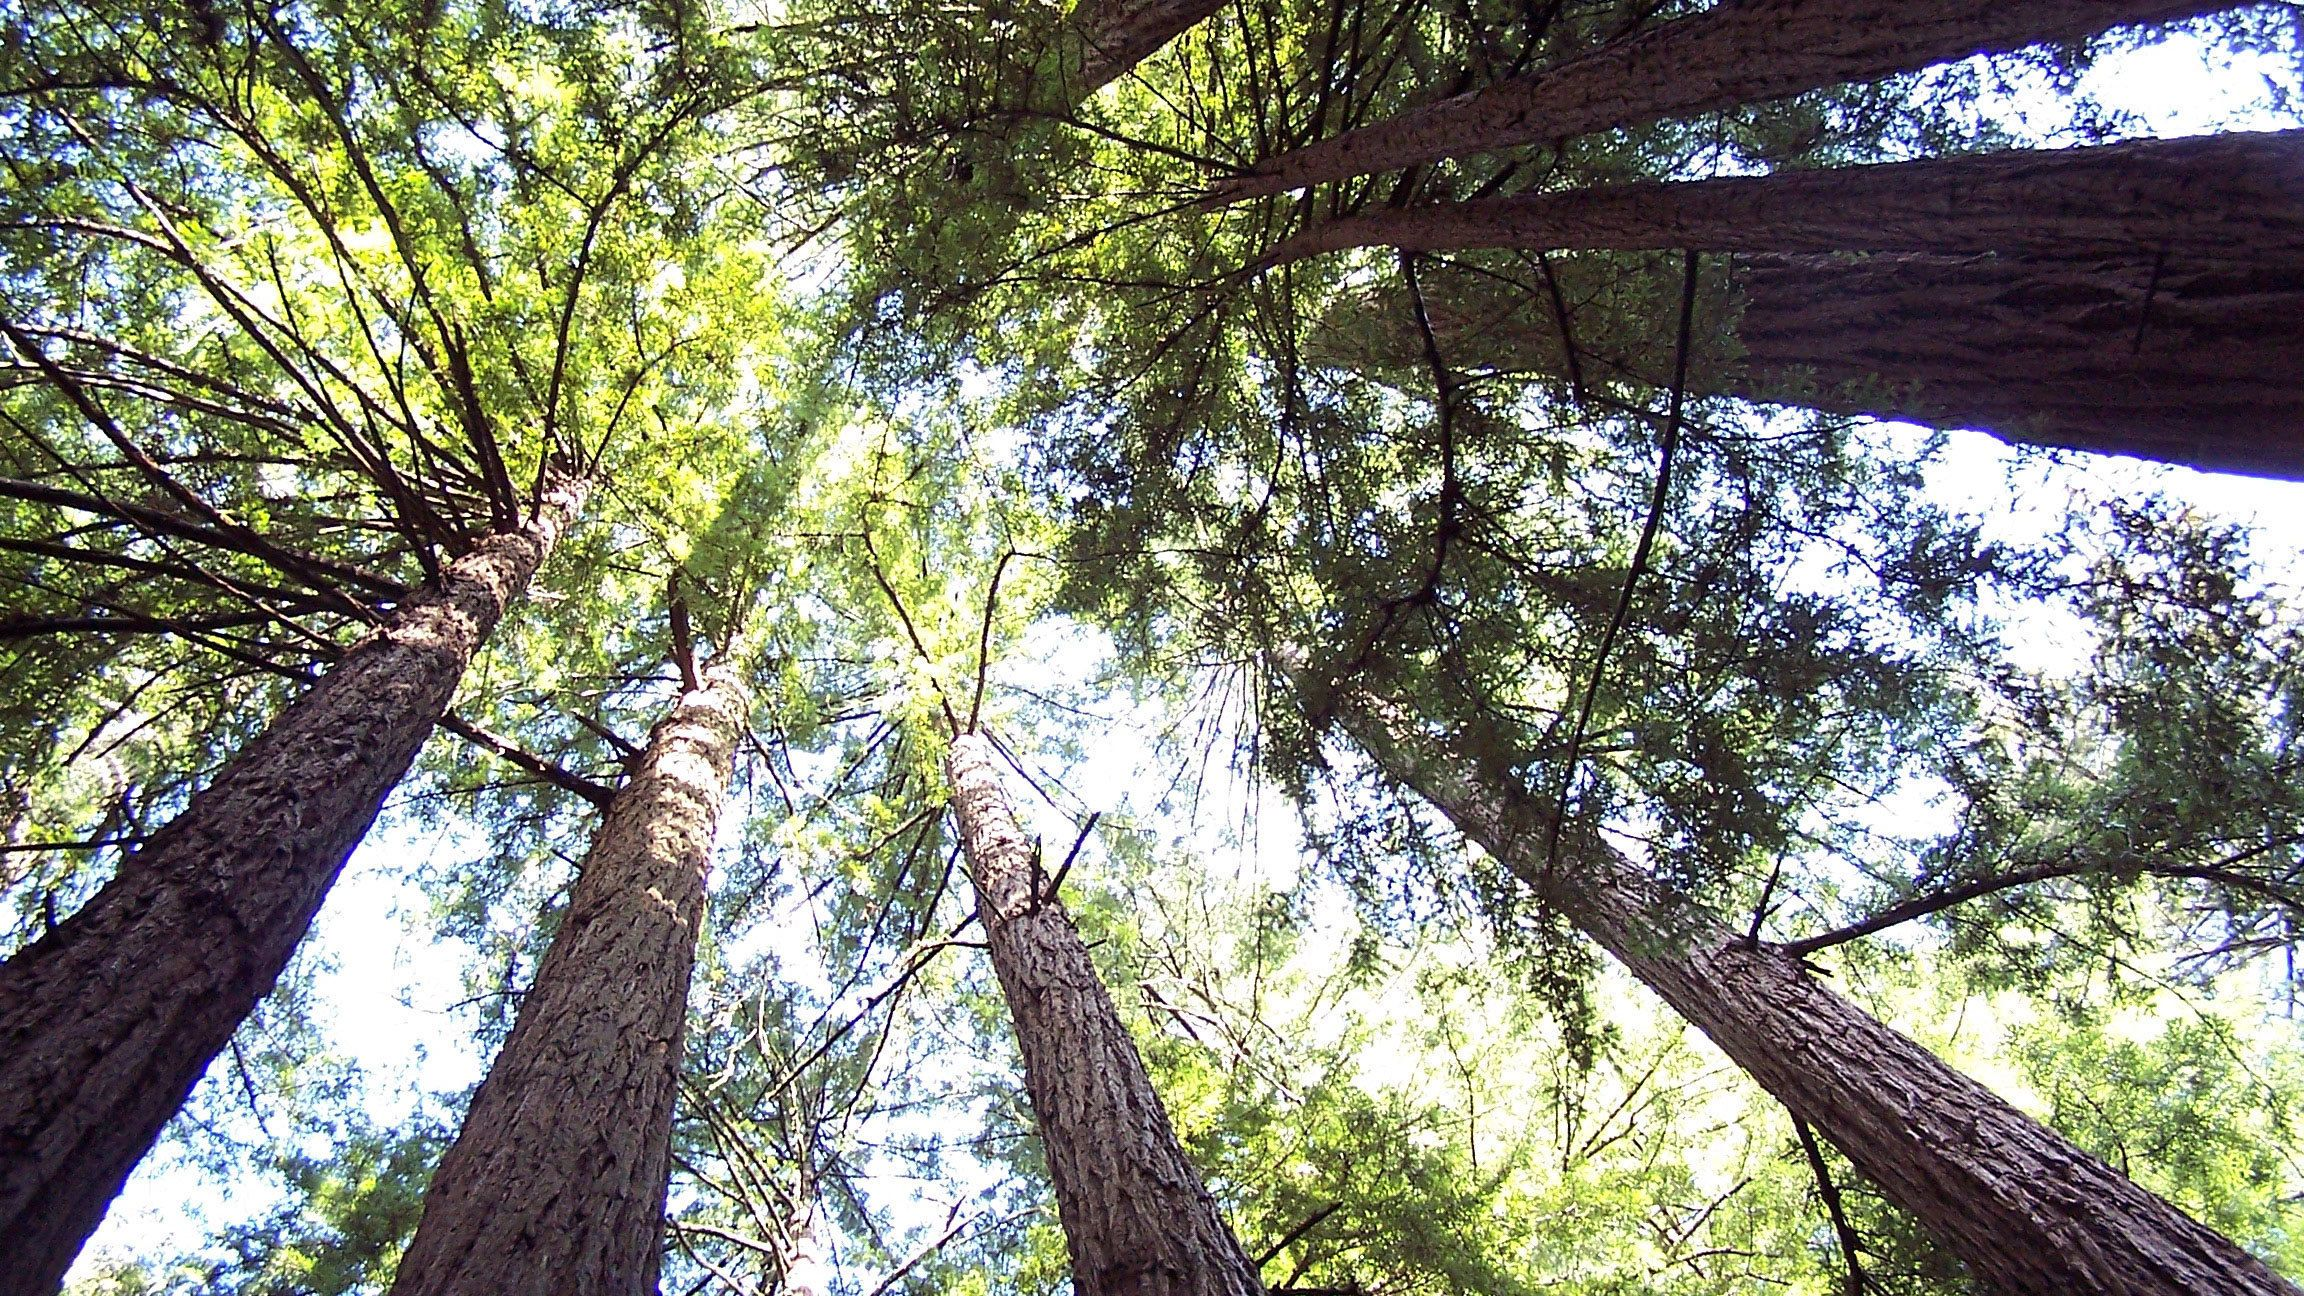 visiting the wooded forest at Muir Woods in San Francisco